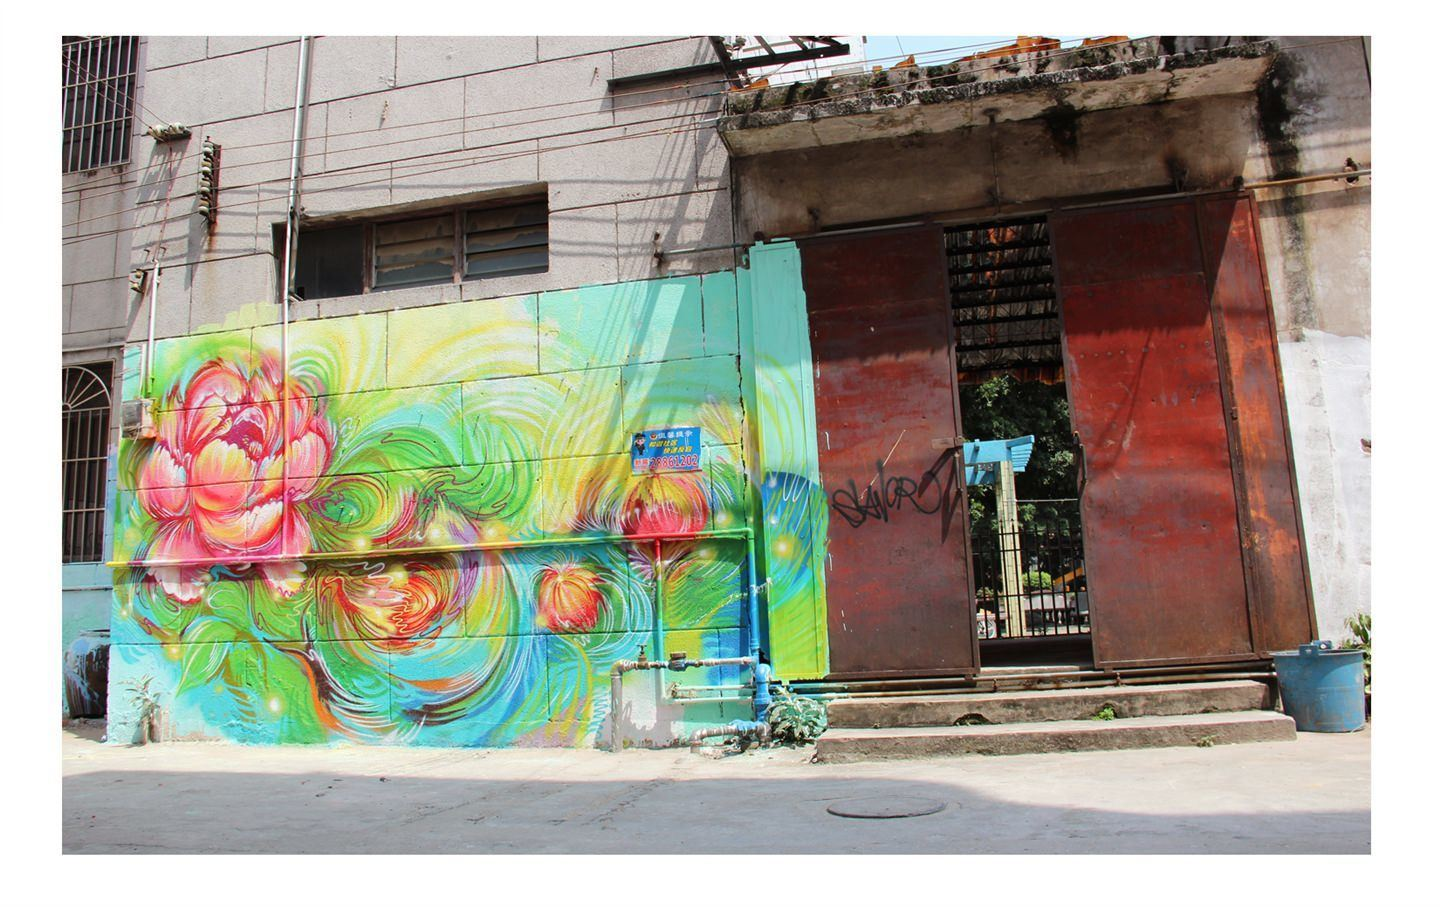 Lotus flowers dance in this beautiful graffiti painting by ...